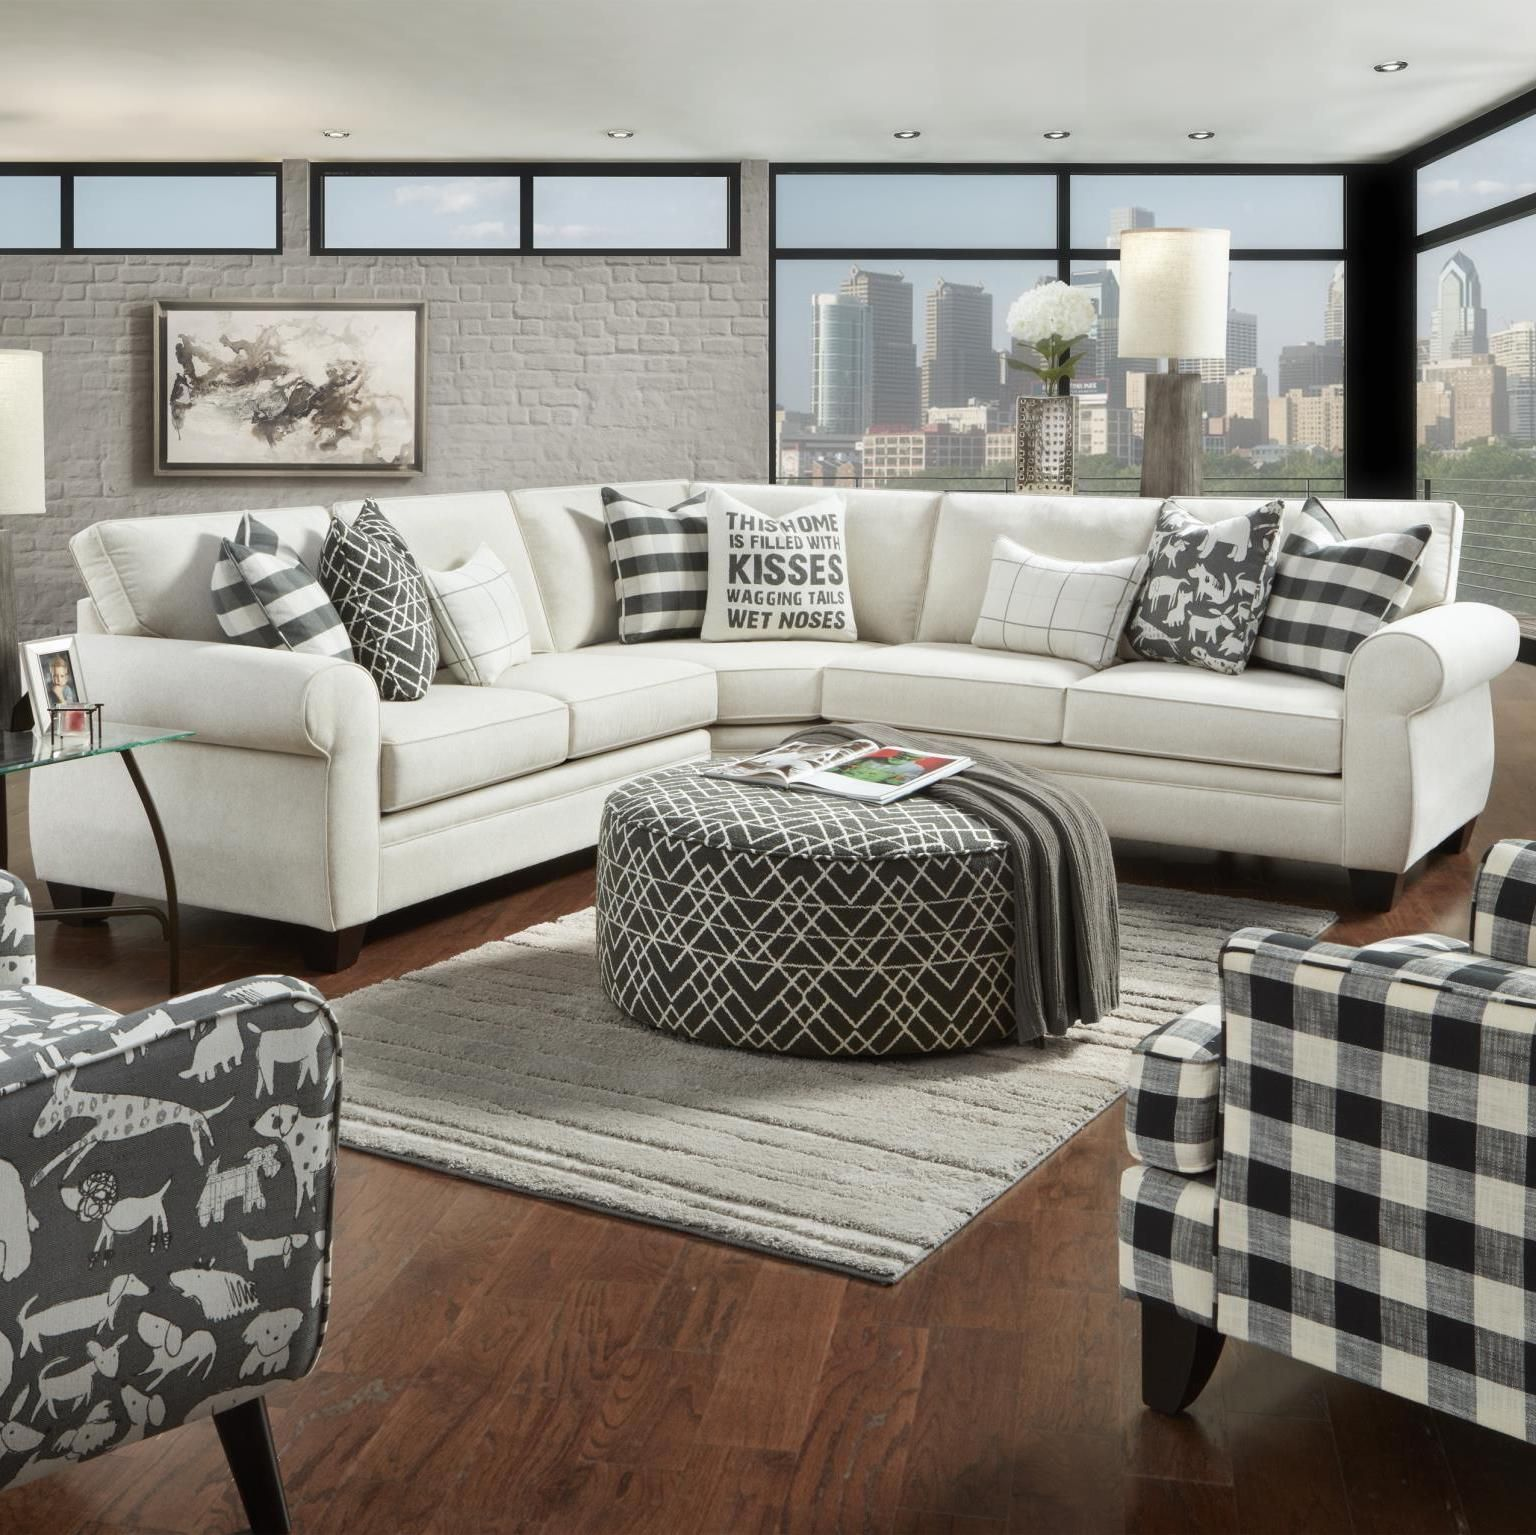 Genial Popstitch Shell 3 Piece Sectional By Fusion Furniture Inc